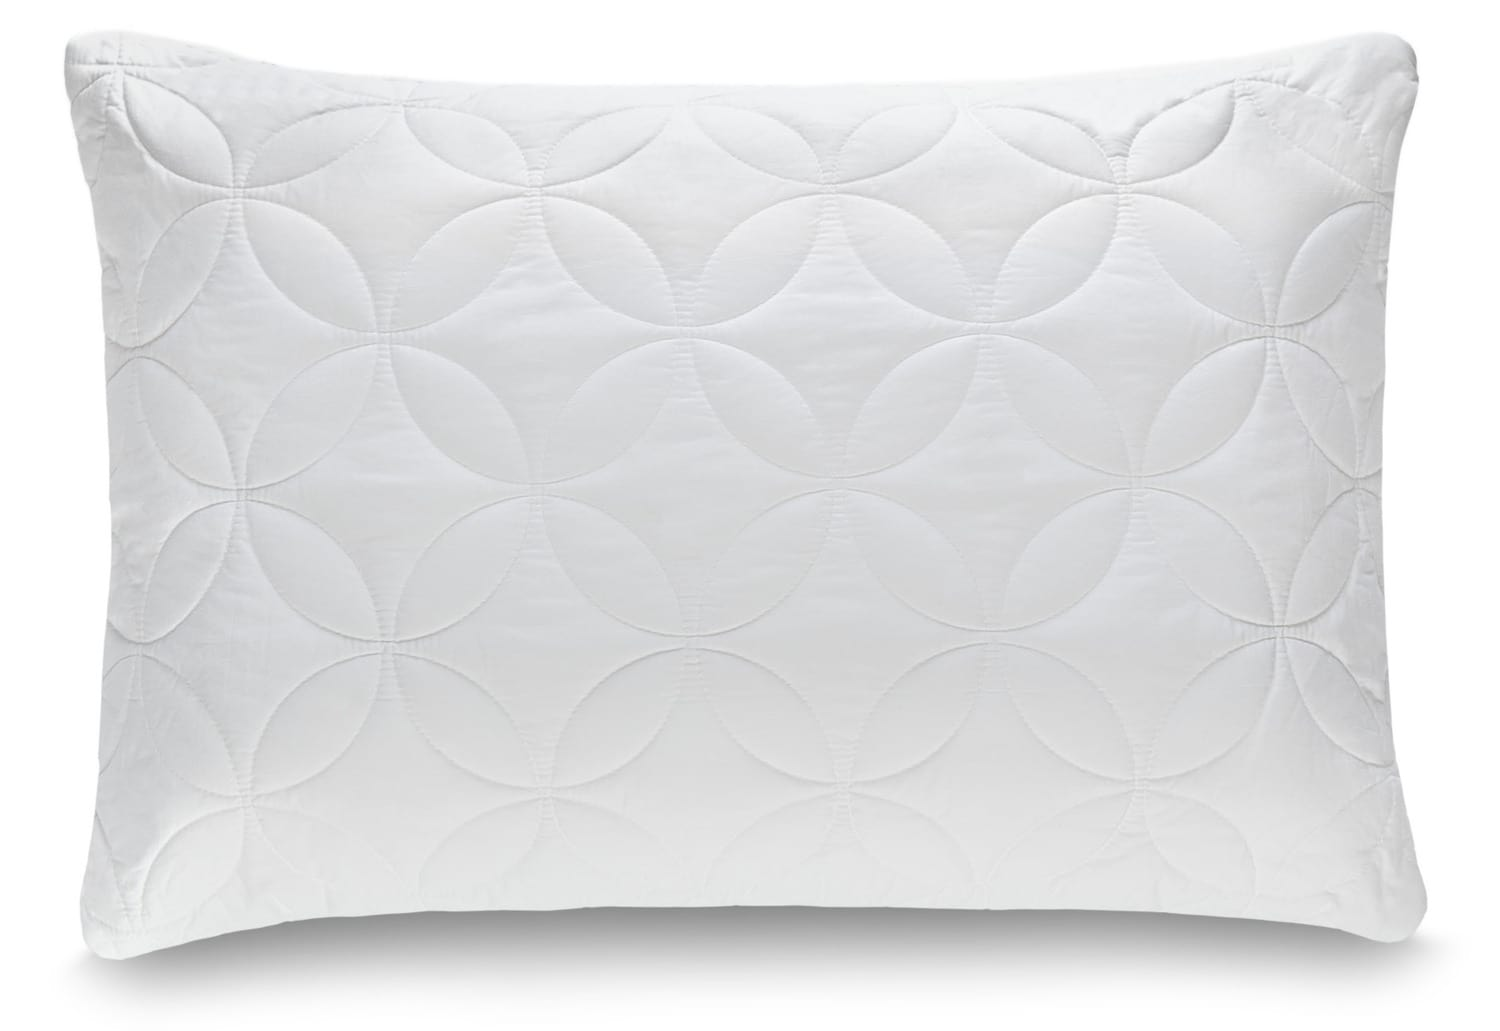 Mattresses and Bedding - Tempur-Pedic™ Soft and Conforming Queen Size Pillow